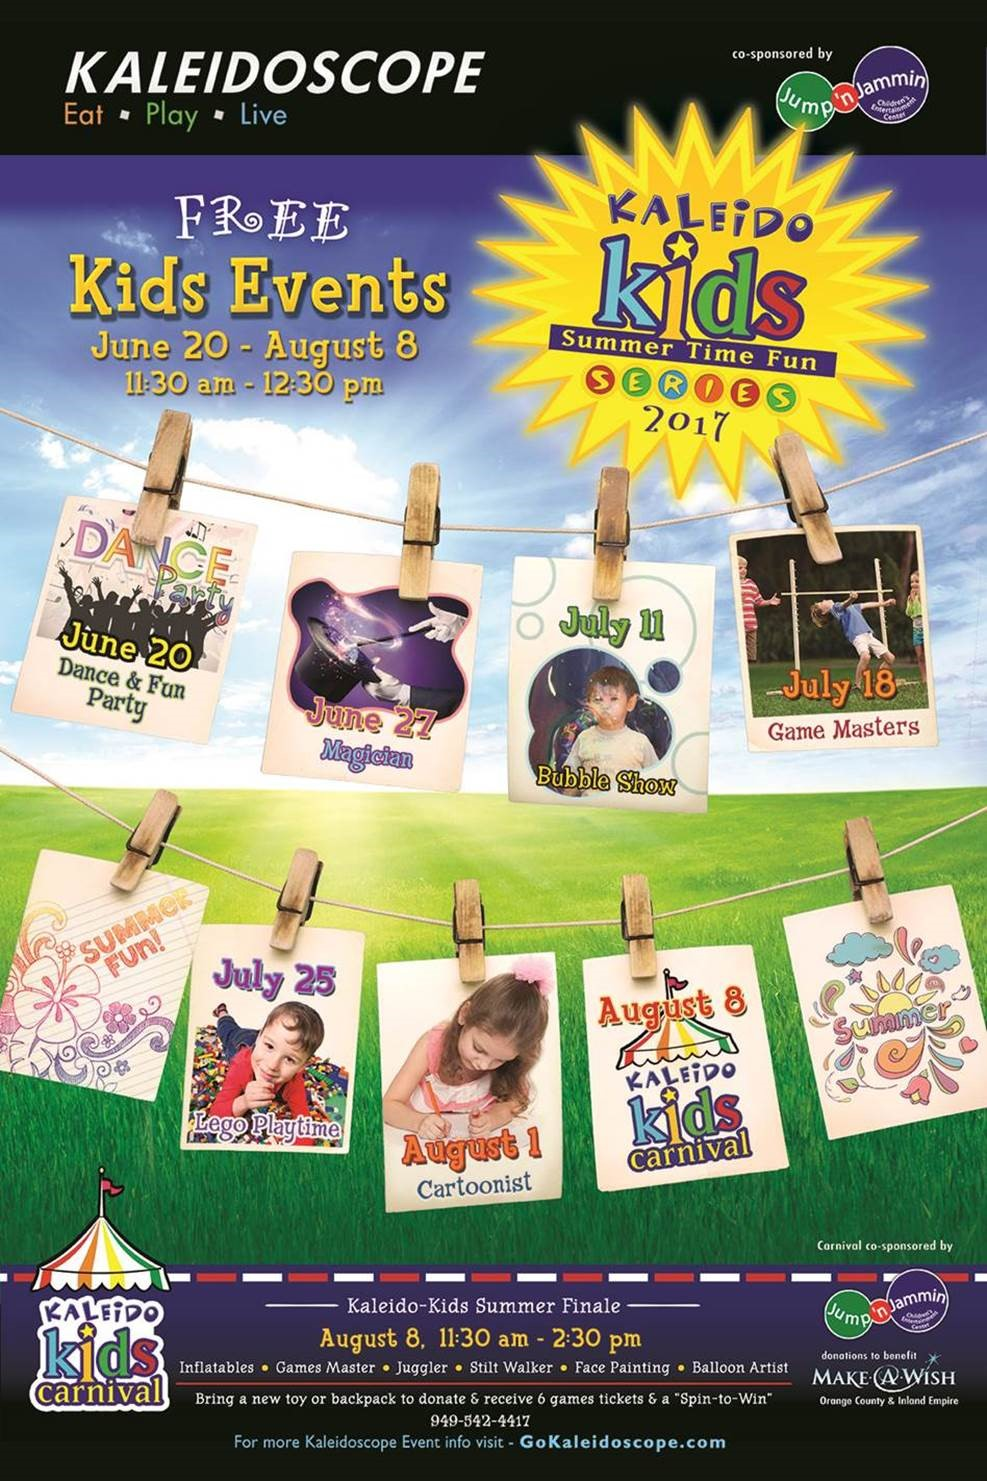 kaleido-kids-summer-events-2017